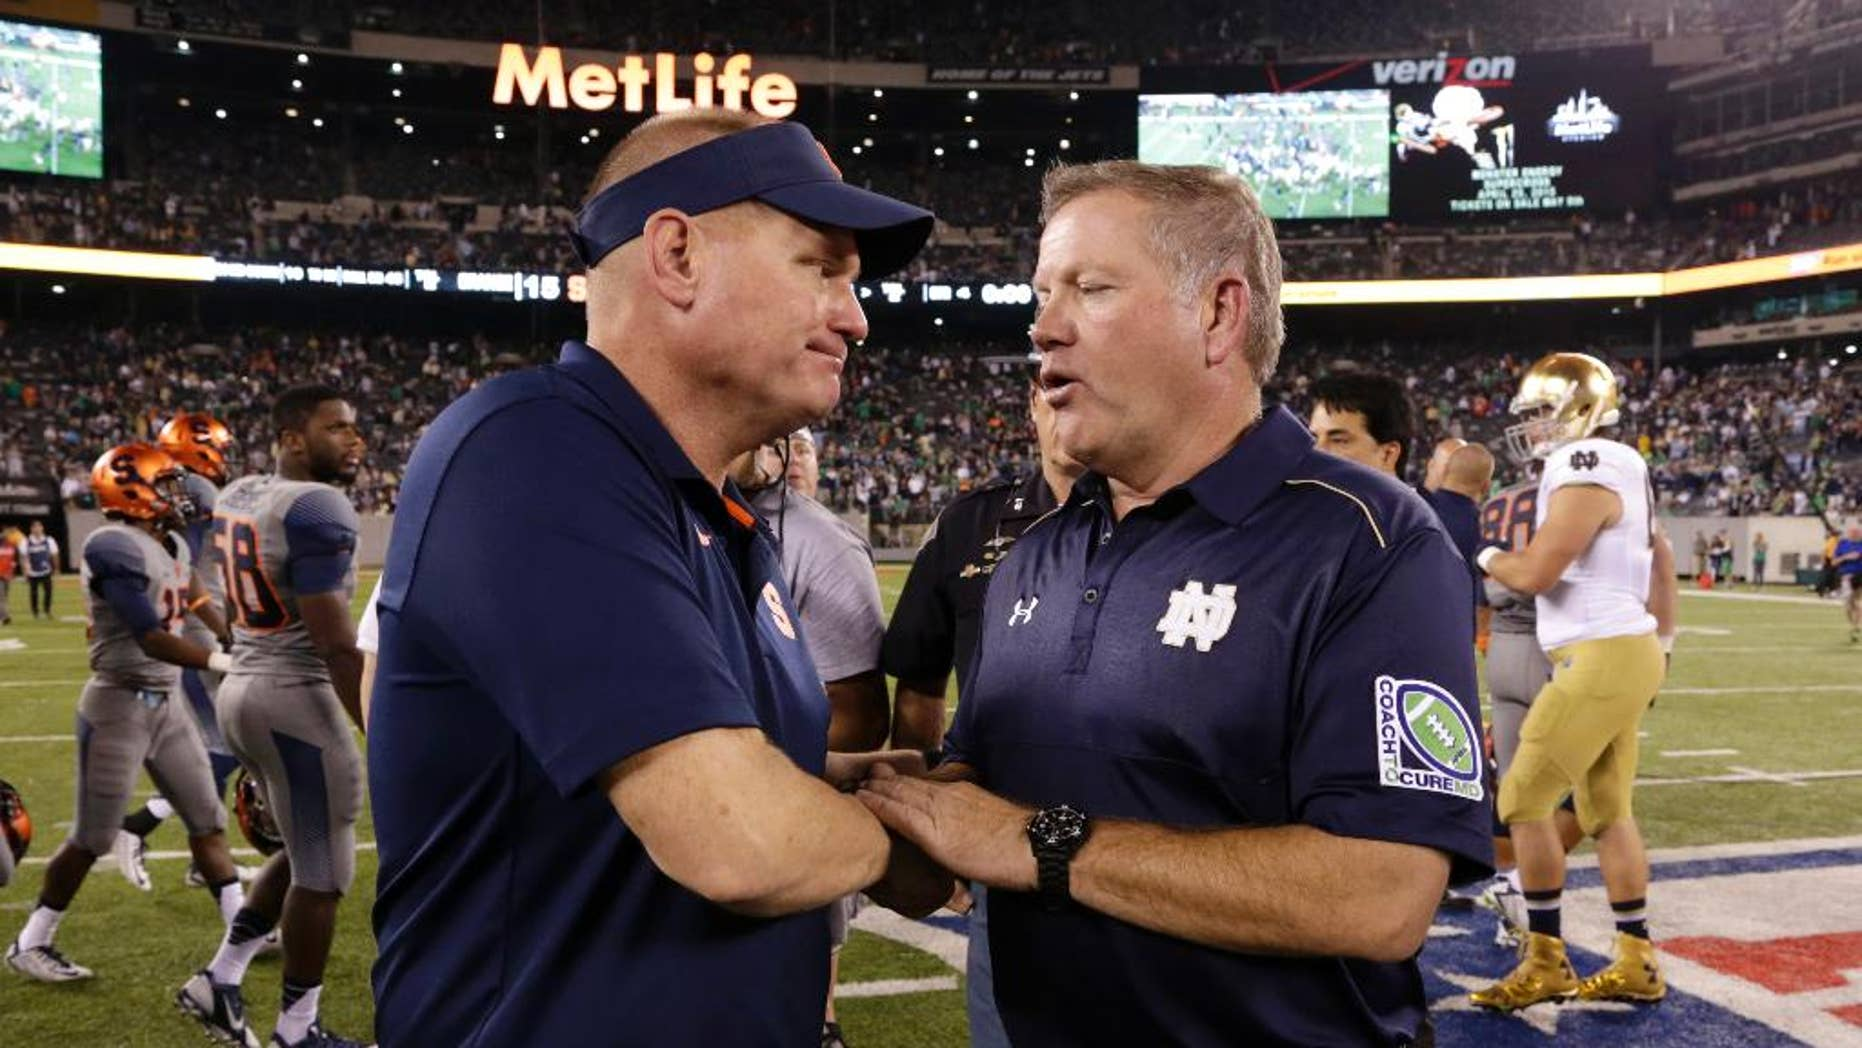 Syracuse coach Scott Shafer, left, and Notre Dame coach Brian Kelly shake hands after an NCAA college football game, Saturday, Sept. 27, 2014, in East Rutherford, N.J. Notre Dame won 31-15. (AP Photo/Julio Cortez)